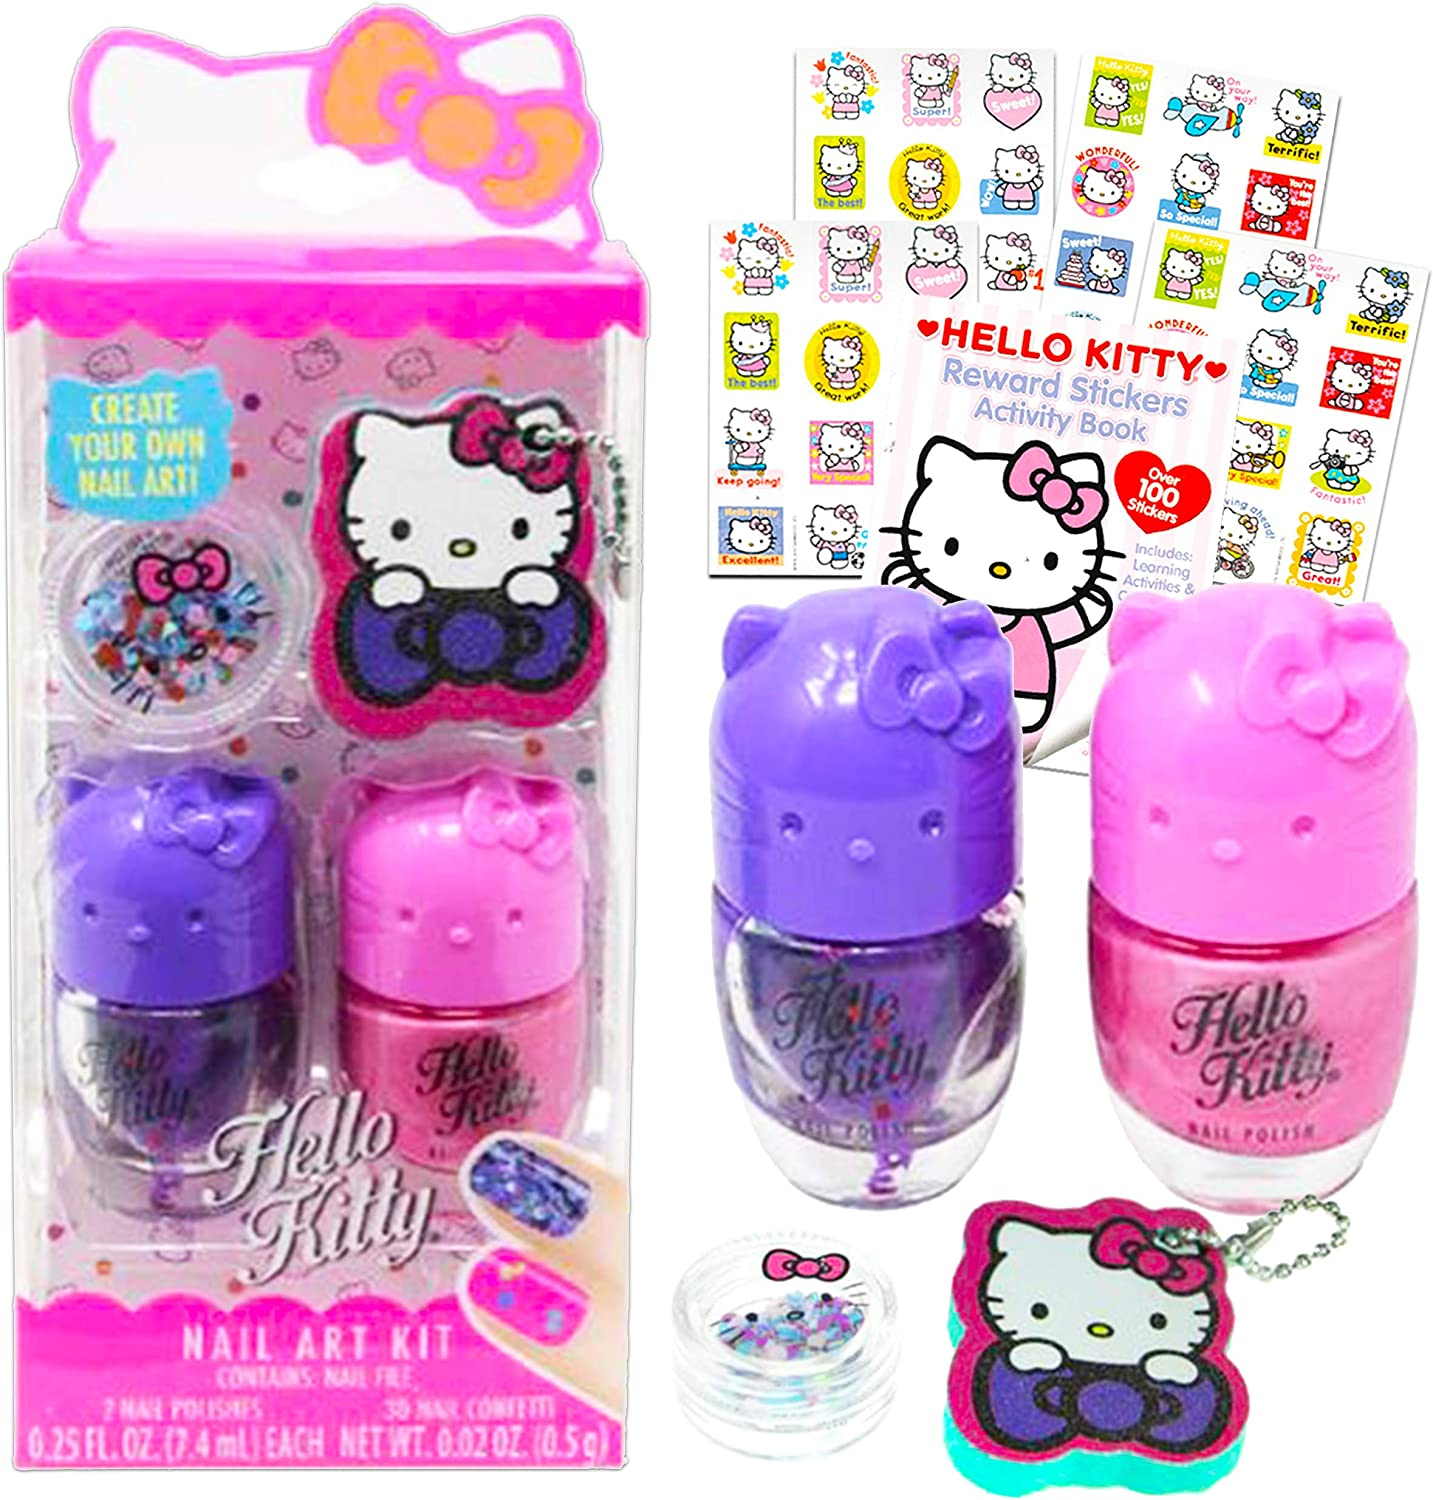 Hello Kitty Theme Gift Set Party Favor - 4 Pc Hello Kitty Nail Accessory Gift Set for Girls and Women with Hello Kitty Stickers (Hello Kitty Themed Things)